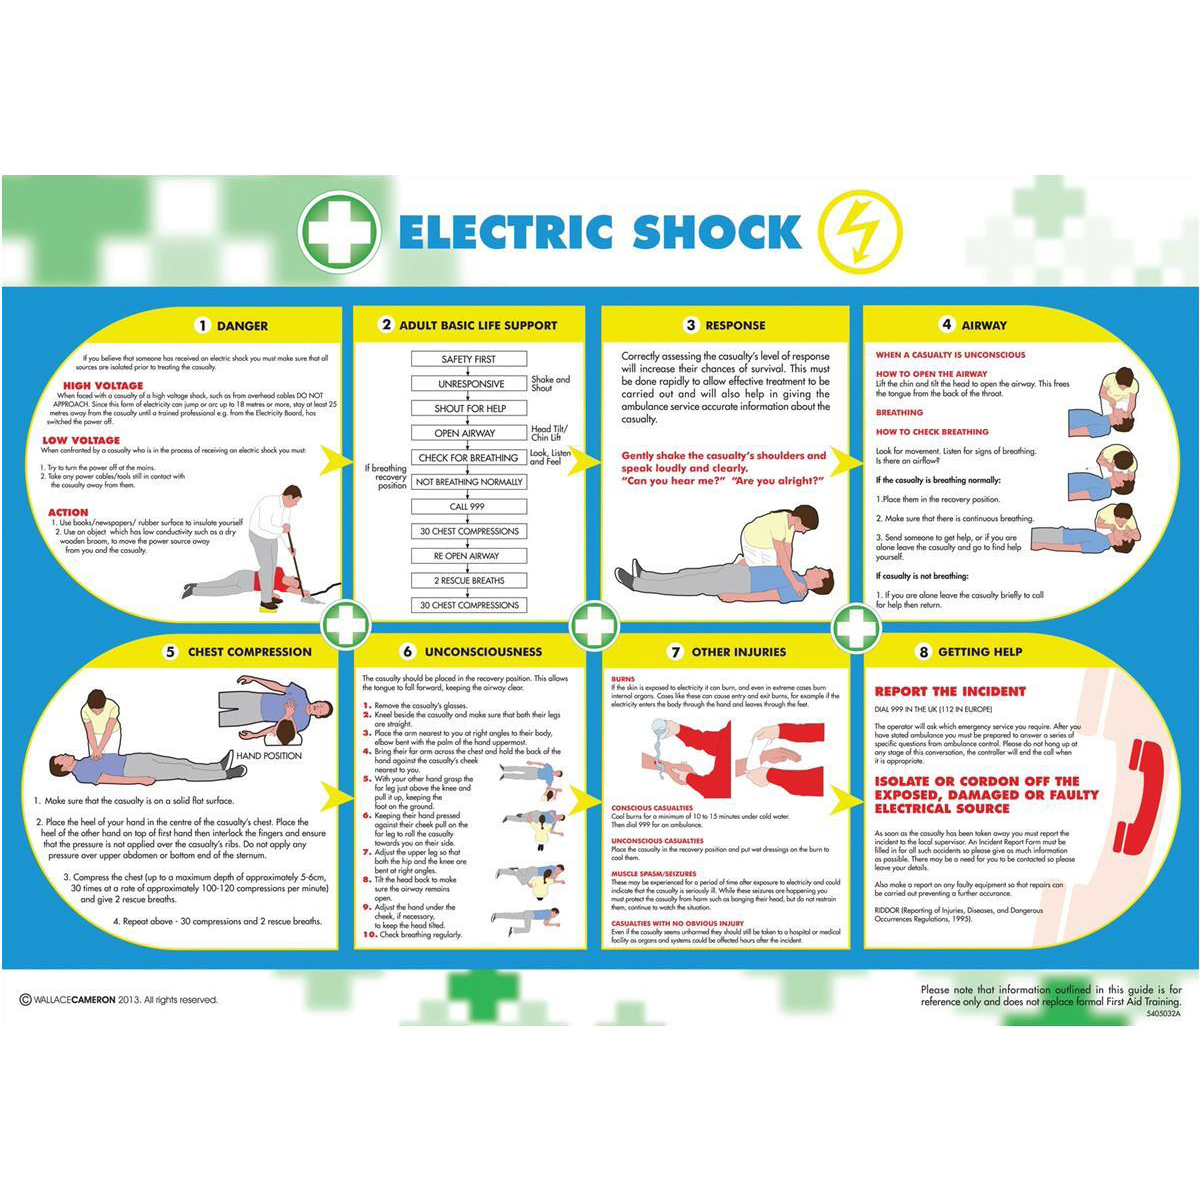 Advice Wallace Cameron Electric Shock Poster Laminated Wall-mountable W590xH420mm Ref 5405026